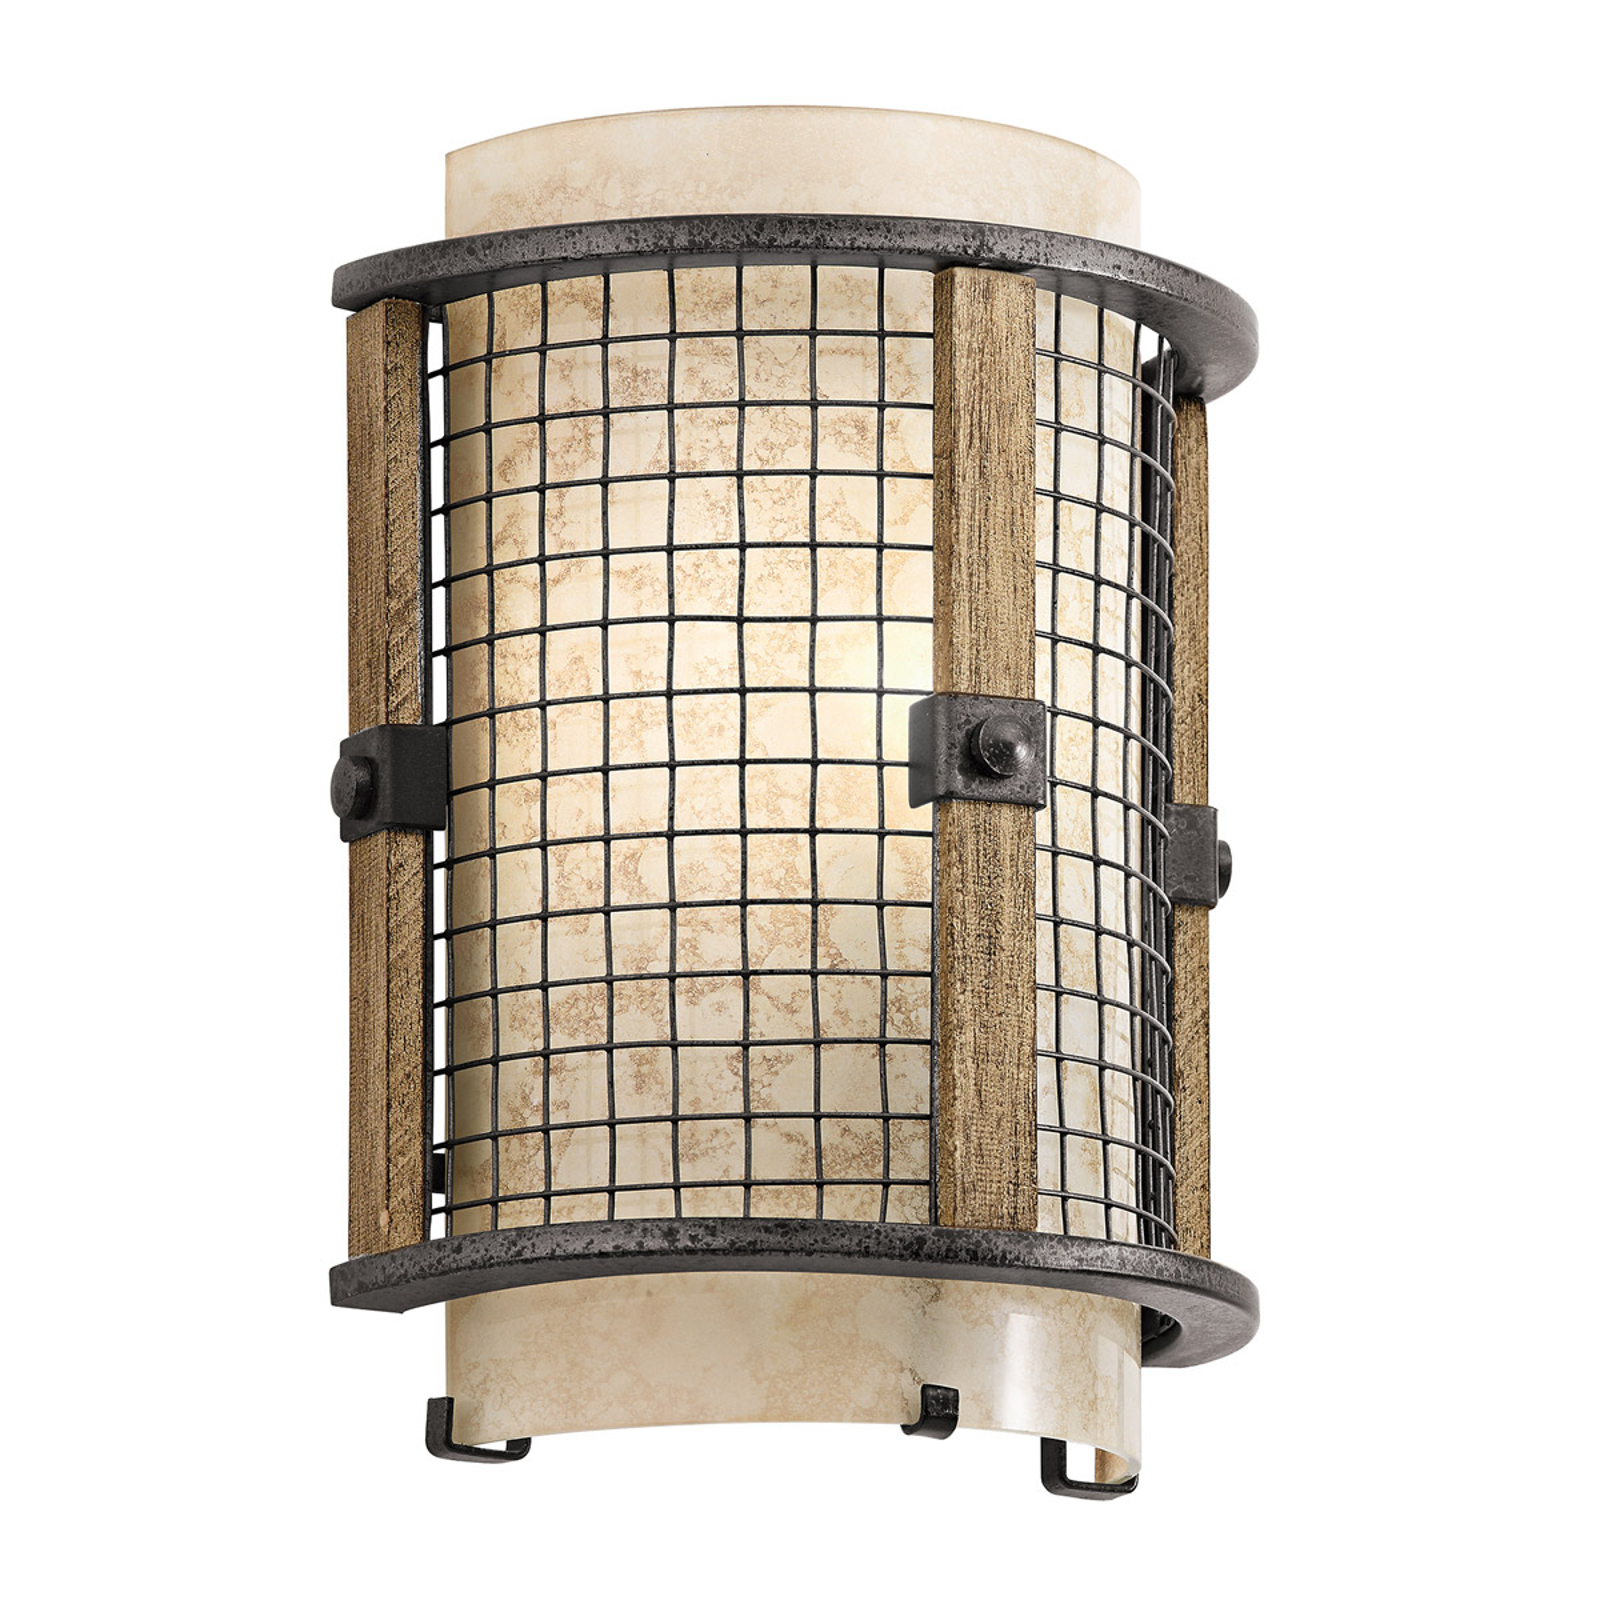 Rustic wall light Ahrendale_3048321_1